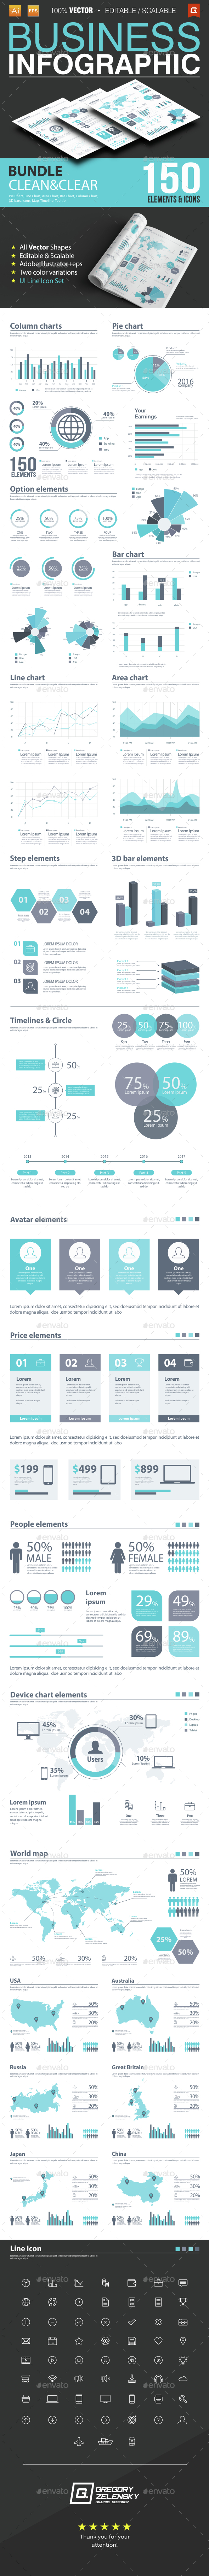 Business Infographic Bundle 150 Elements - Infographics